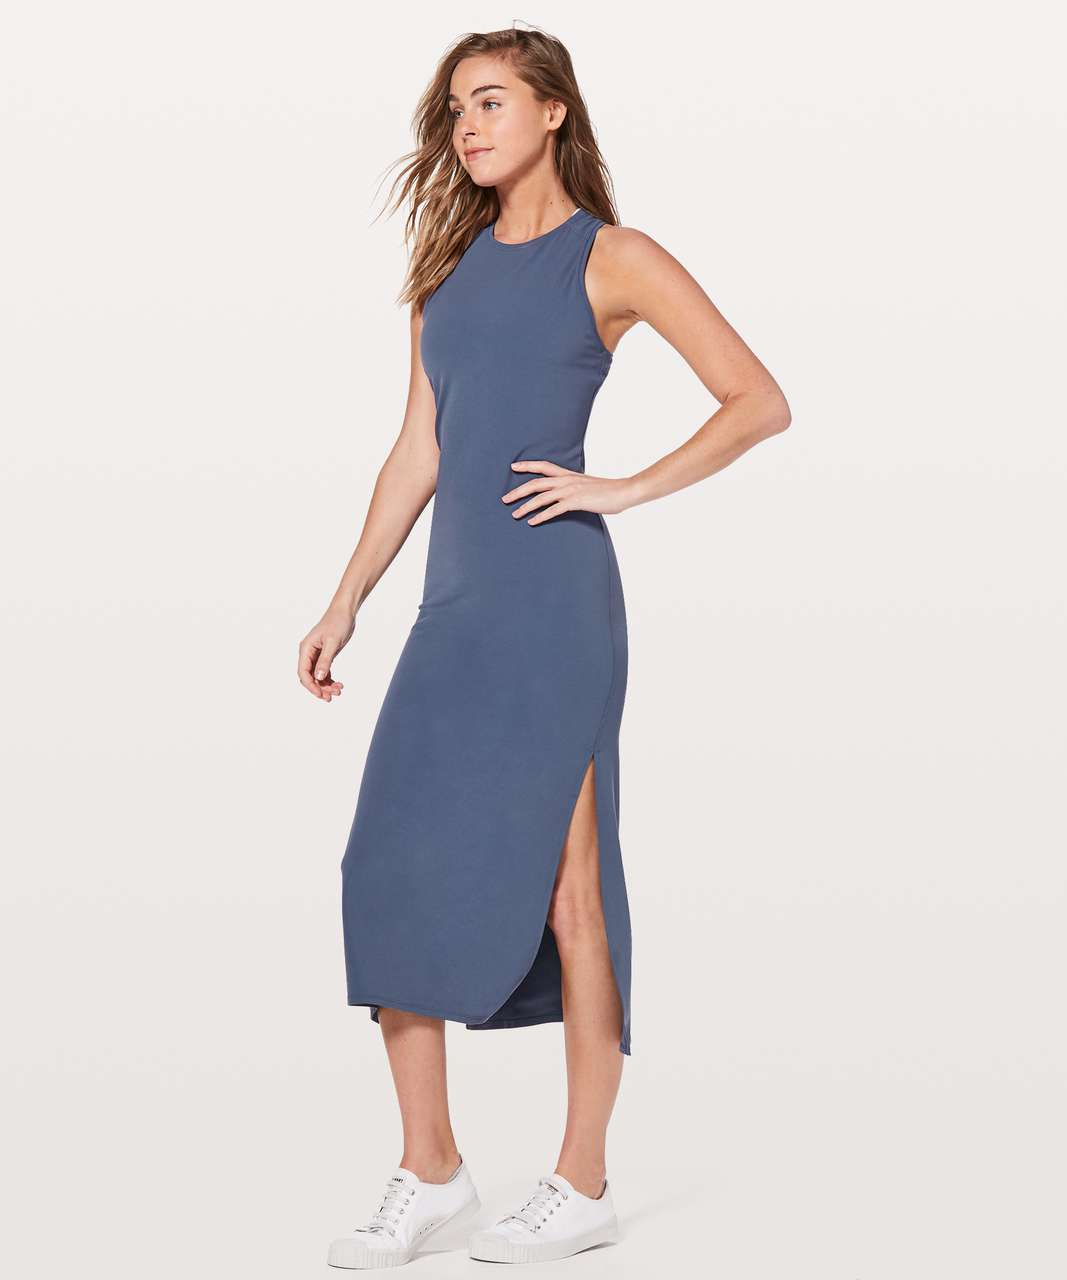 Lululemon Get Going Dress - Moody Blues